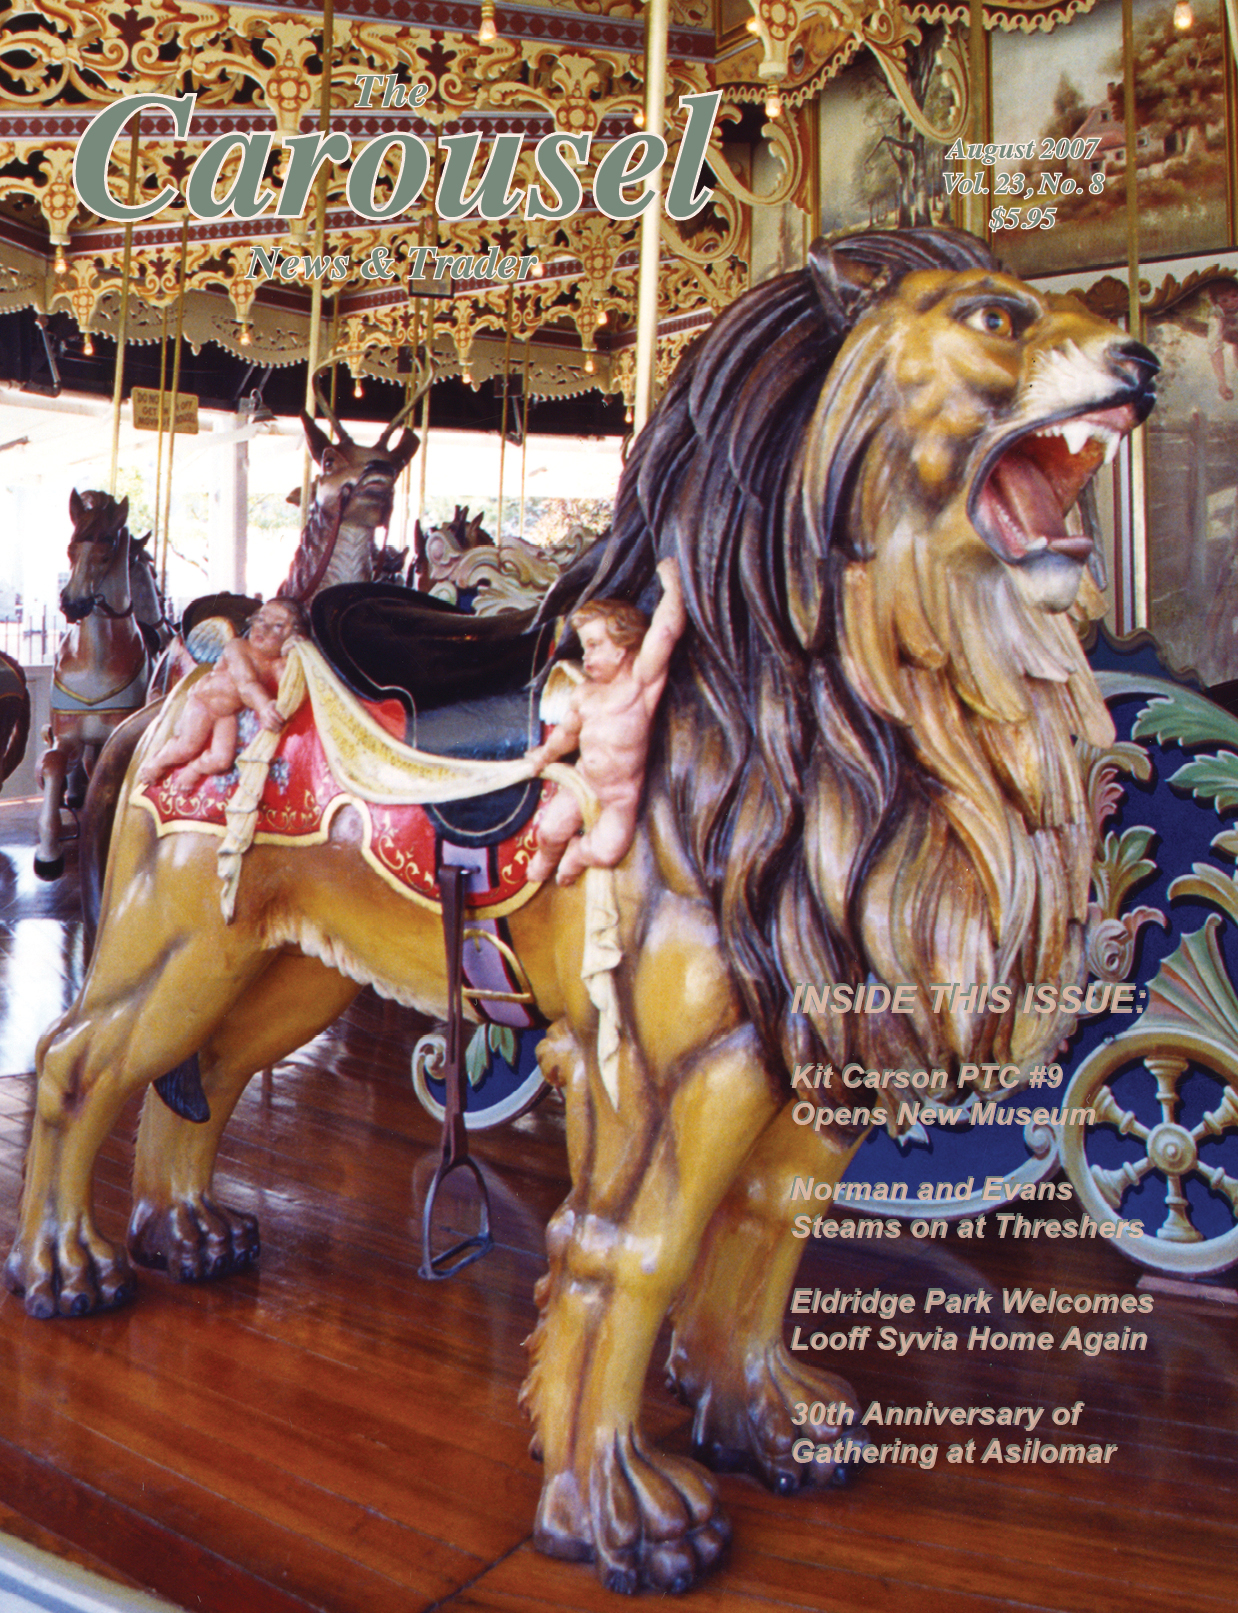 Carousel-news-cover-8-Kit-Carson-carousel-August_2007